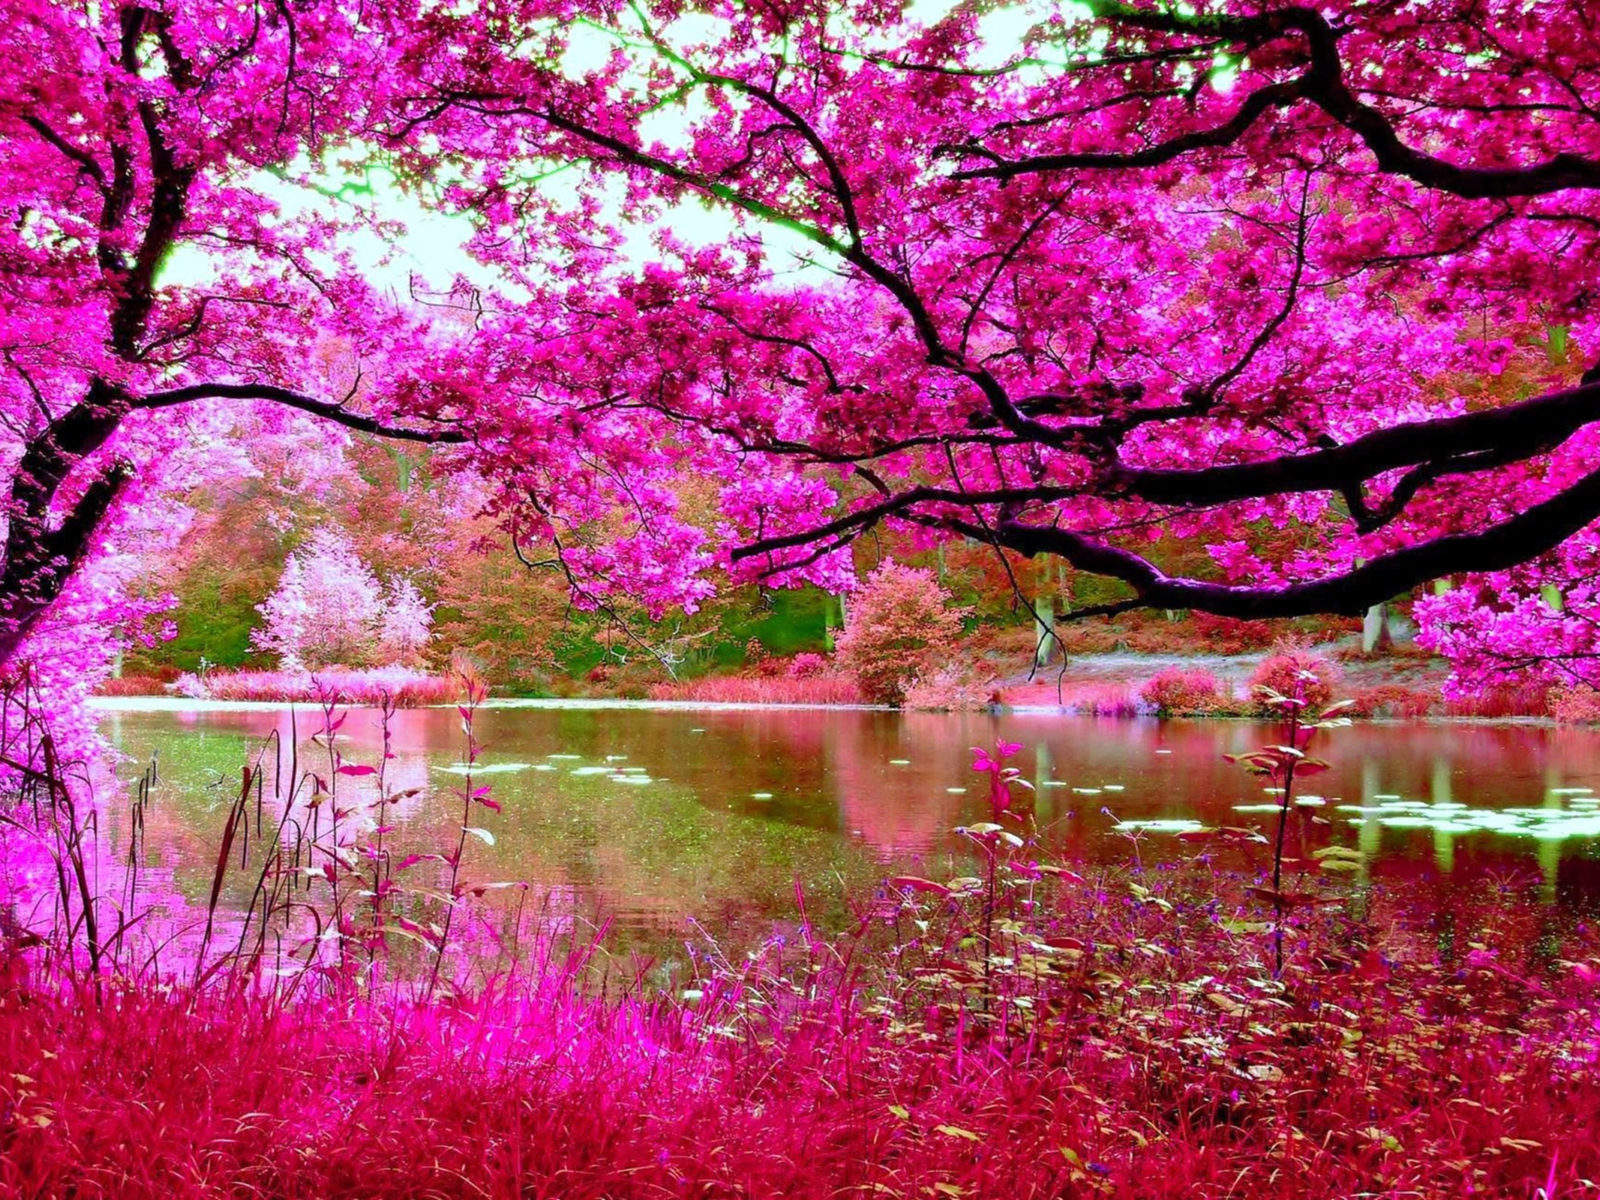 Fall Flowers Desktop Background Wallpaper Cherry Blossoms Spring Pink Cherry Tree River Nature Hd